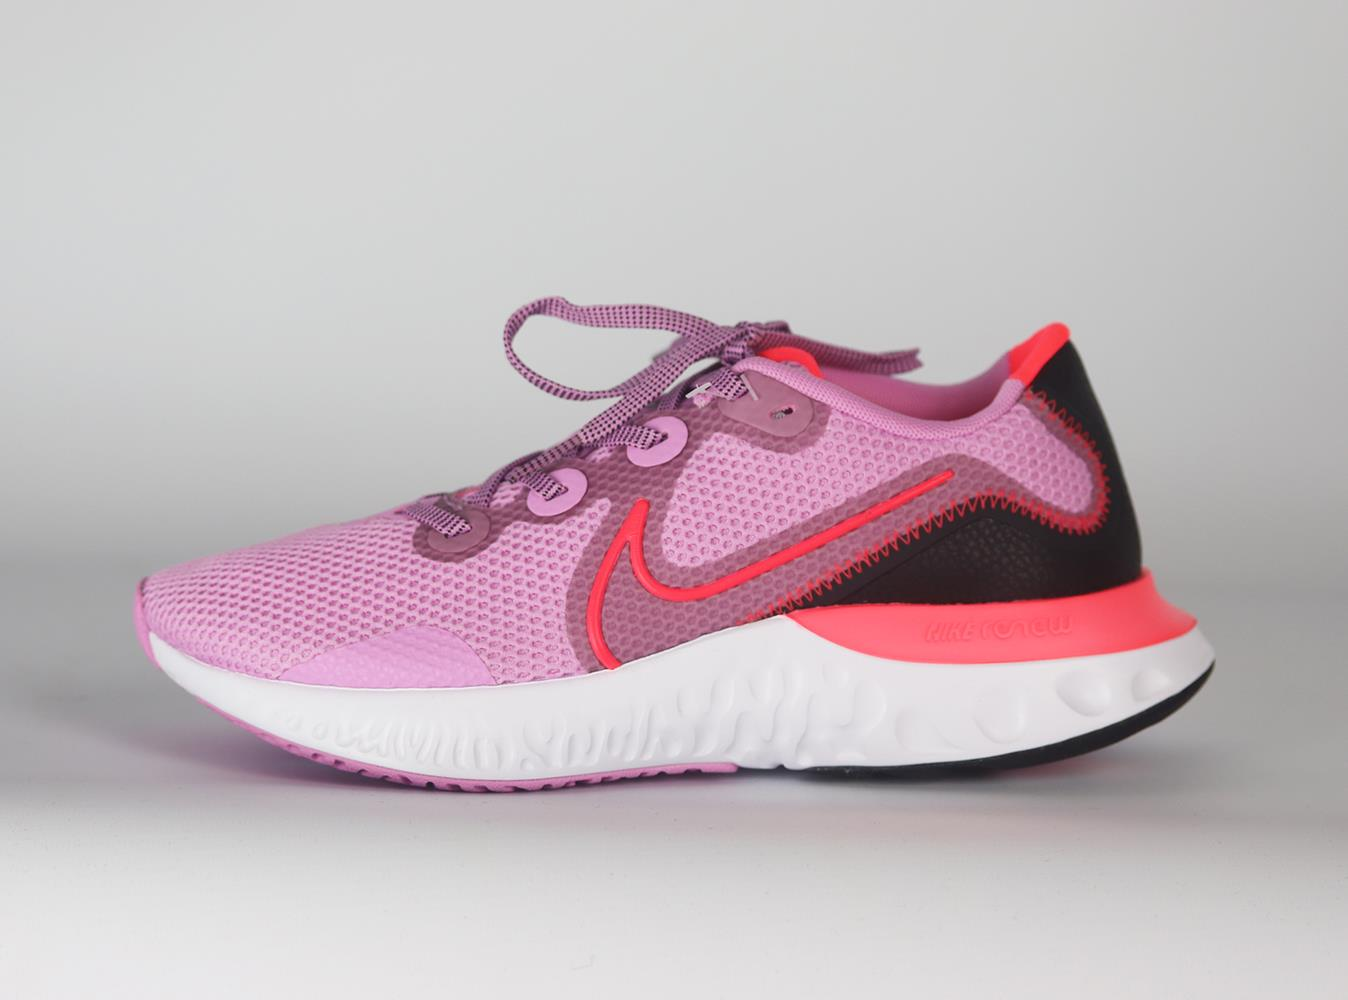 NIKE RENEW RUBBER AND PVC TRIMMED MESH SNEAKERS EU 40 UK 6 US 8.5